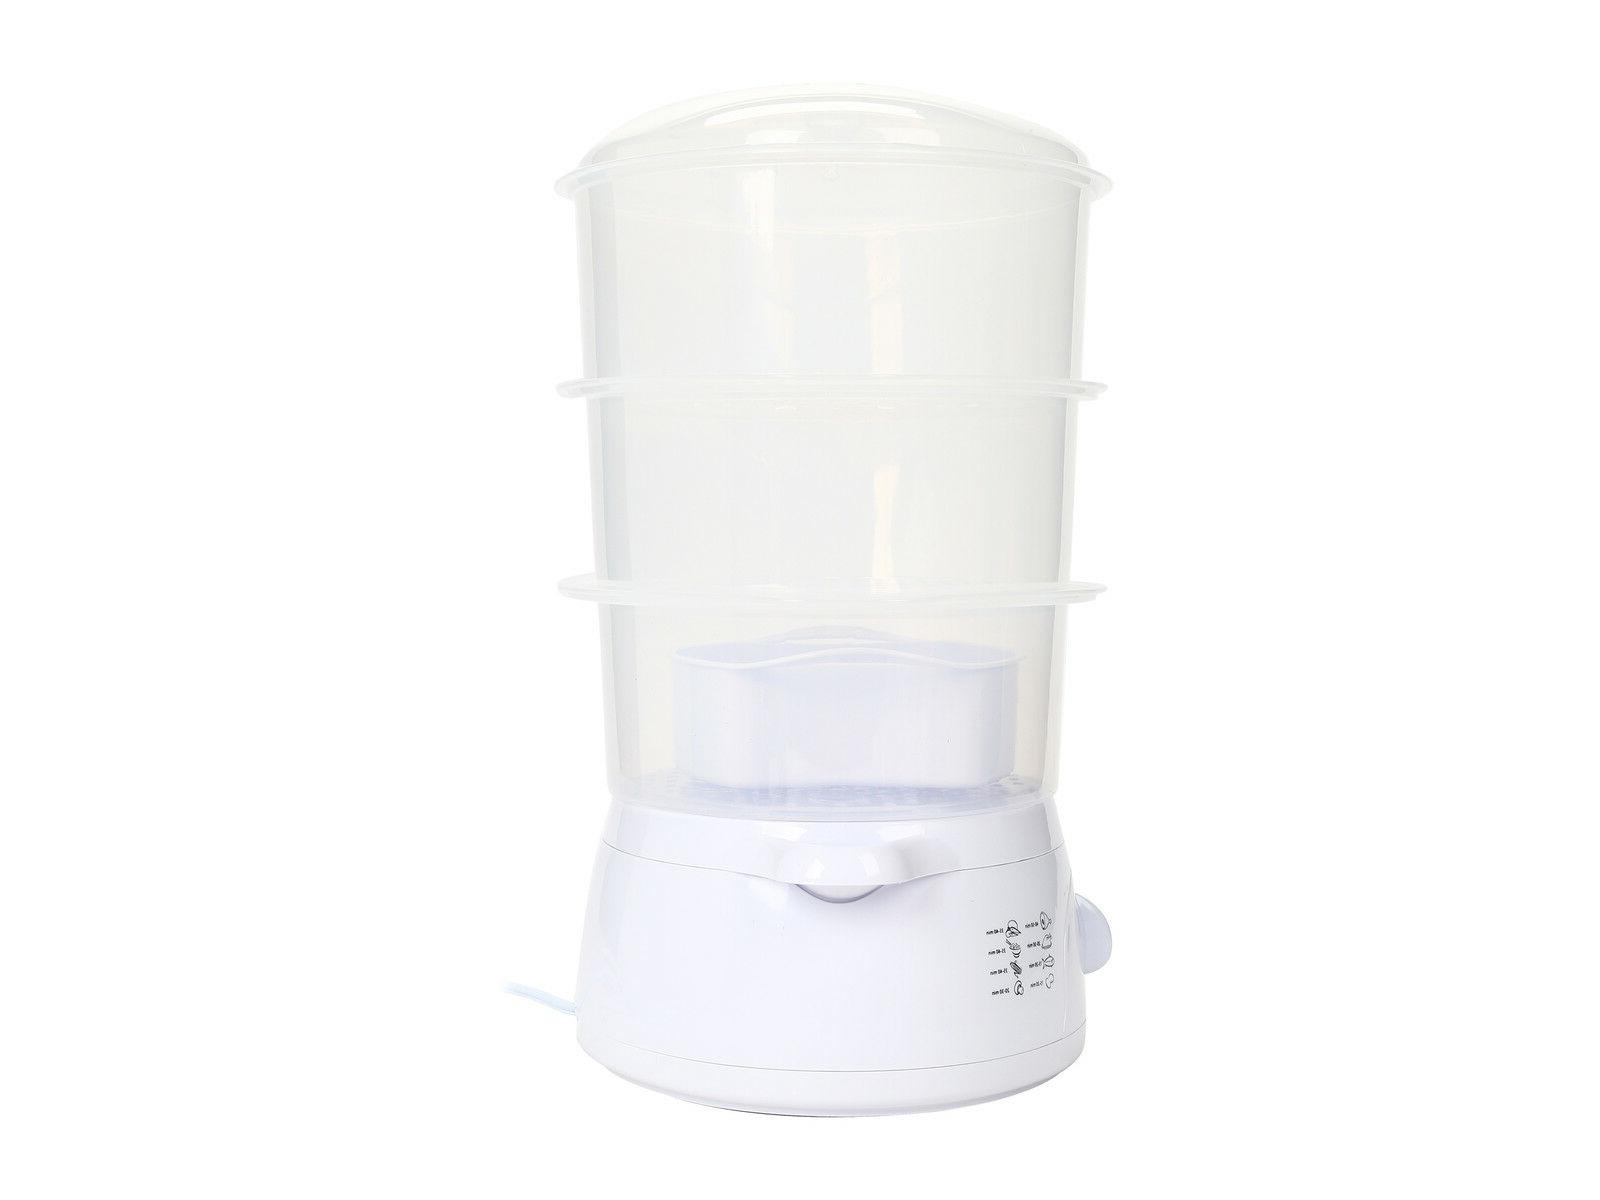 Rosewill 3-Tier Food Steamer 800 - gal - White